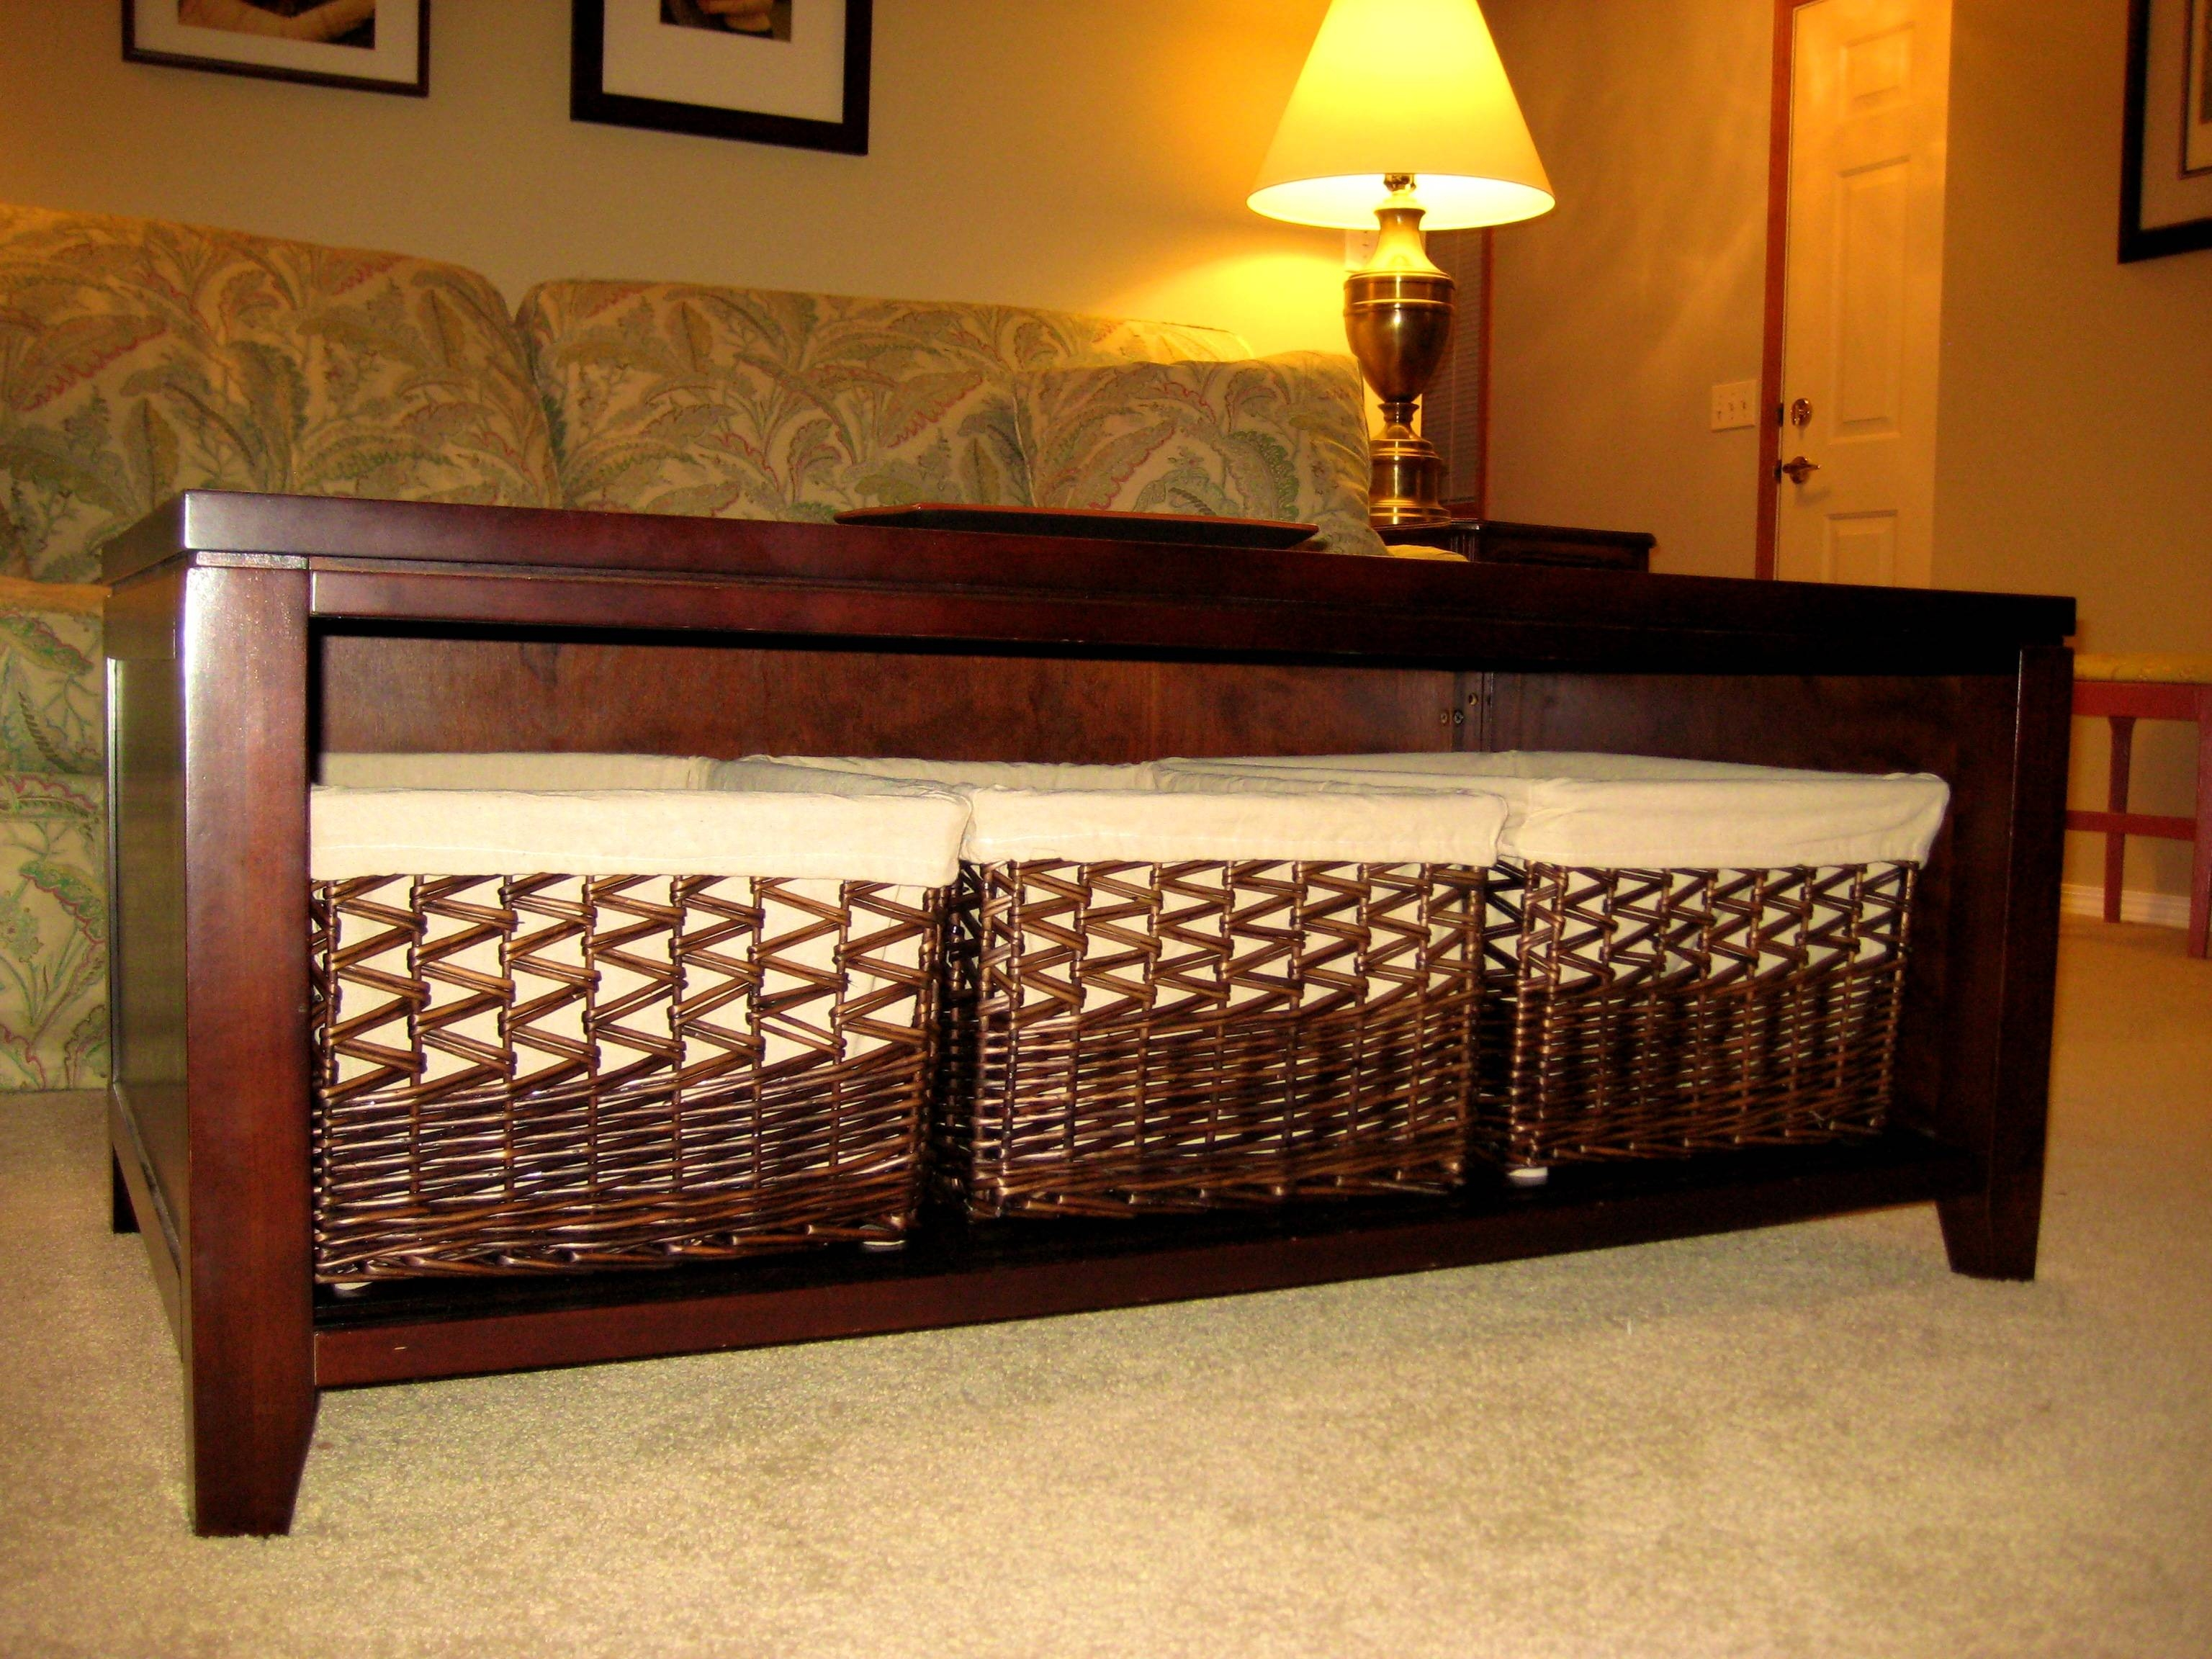 Bedroom : Stunning Square Coffee Table Basket Storage Baskets pertaining to Coffee Tables With Baskets Underneath (Image 5 of 30)